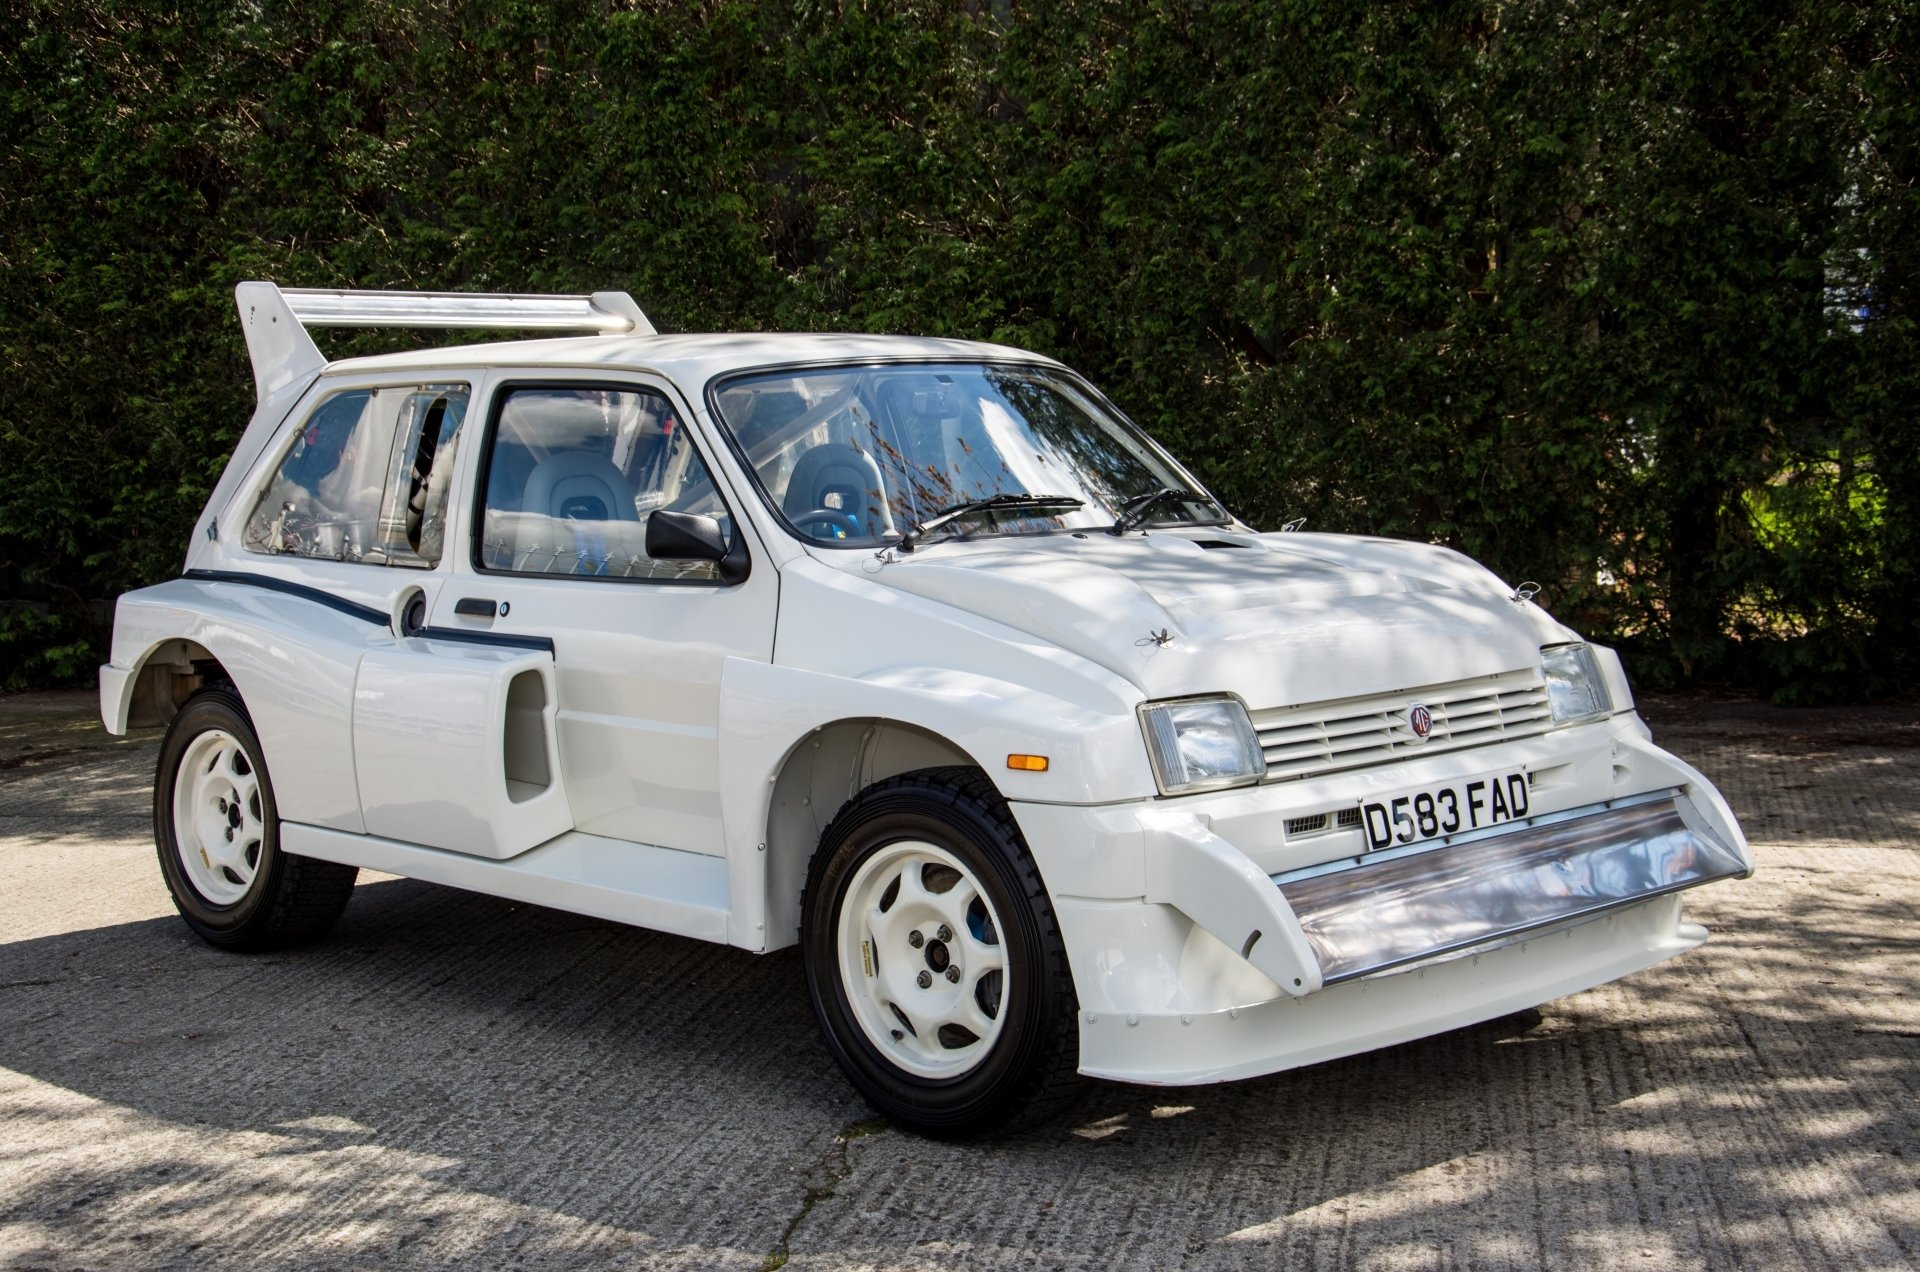 mg-metro-6r4-gpb-homologation-car-02